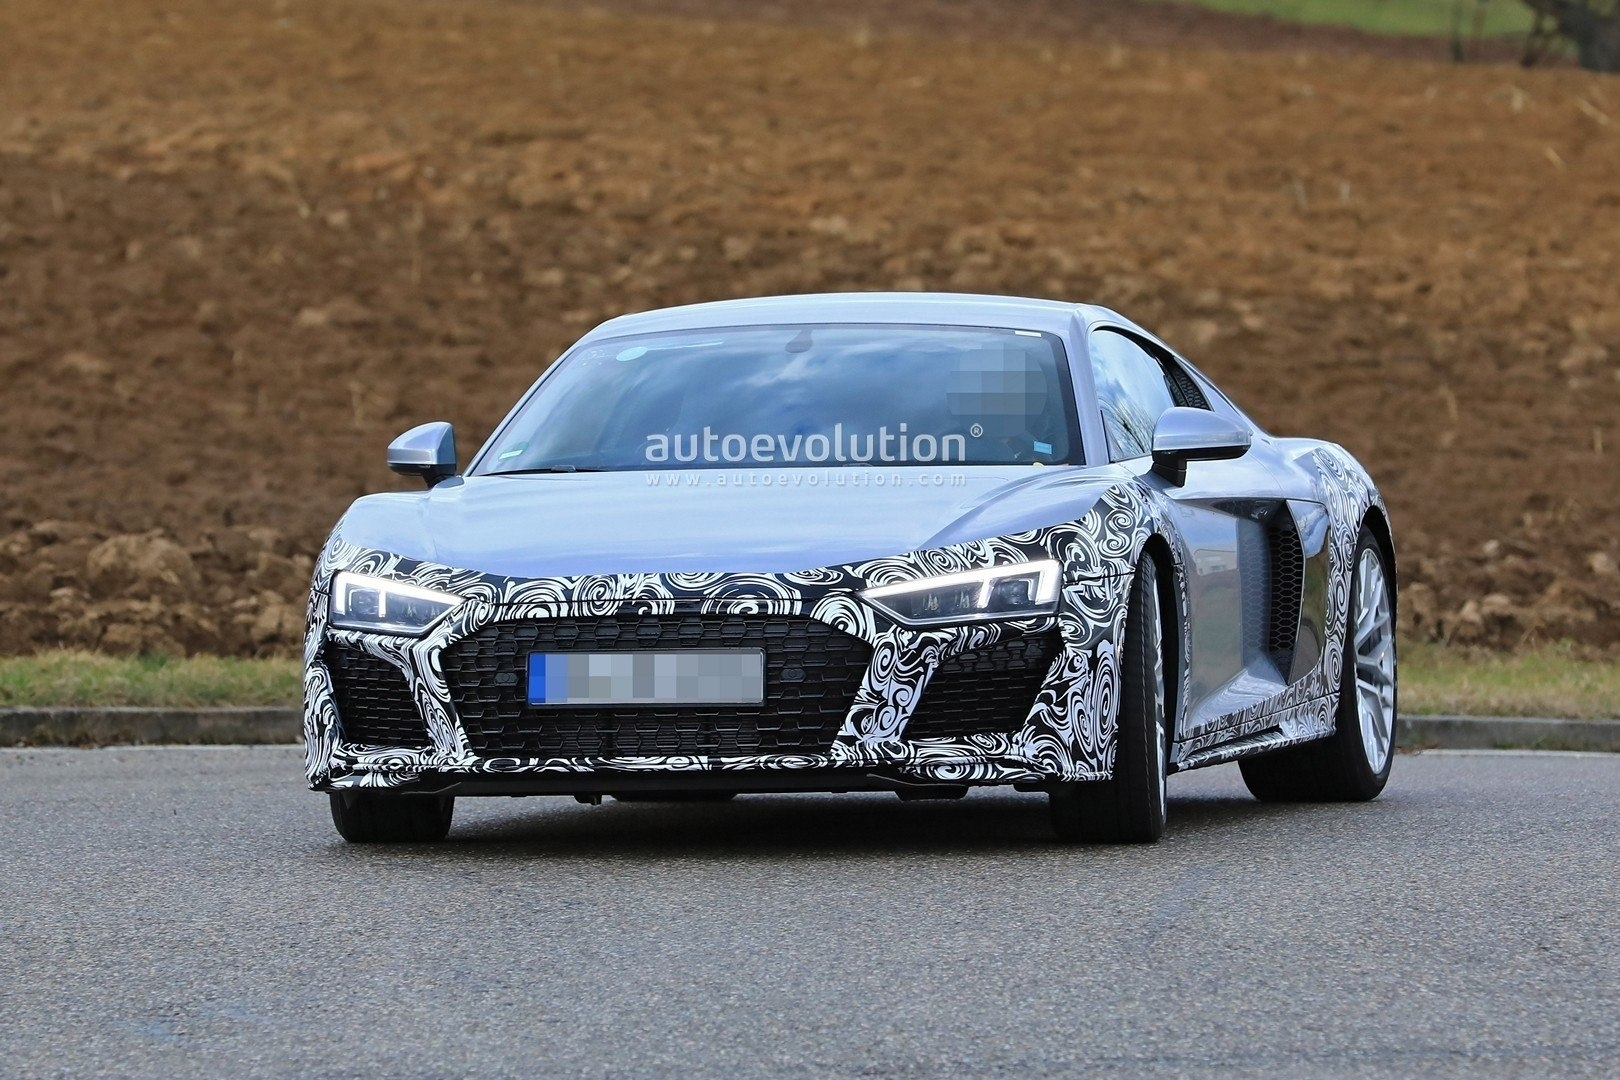 51 All New 2020 Audi R8 LMXs Release